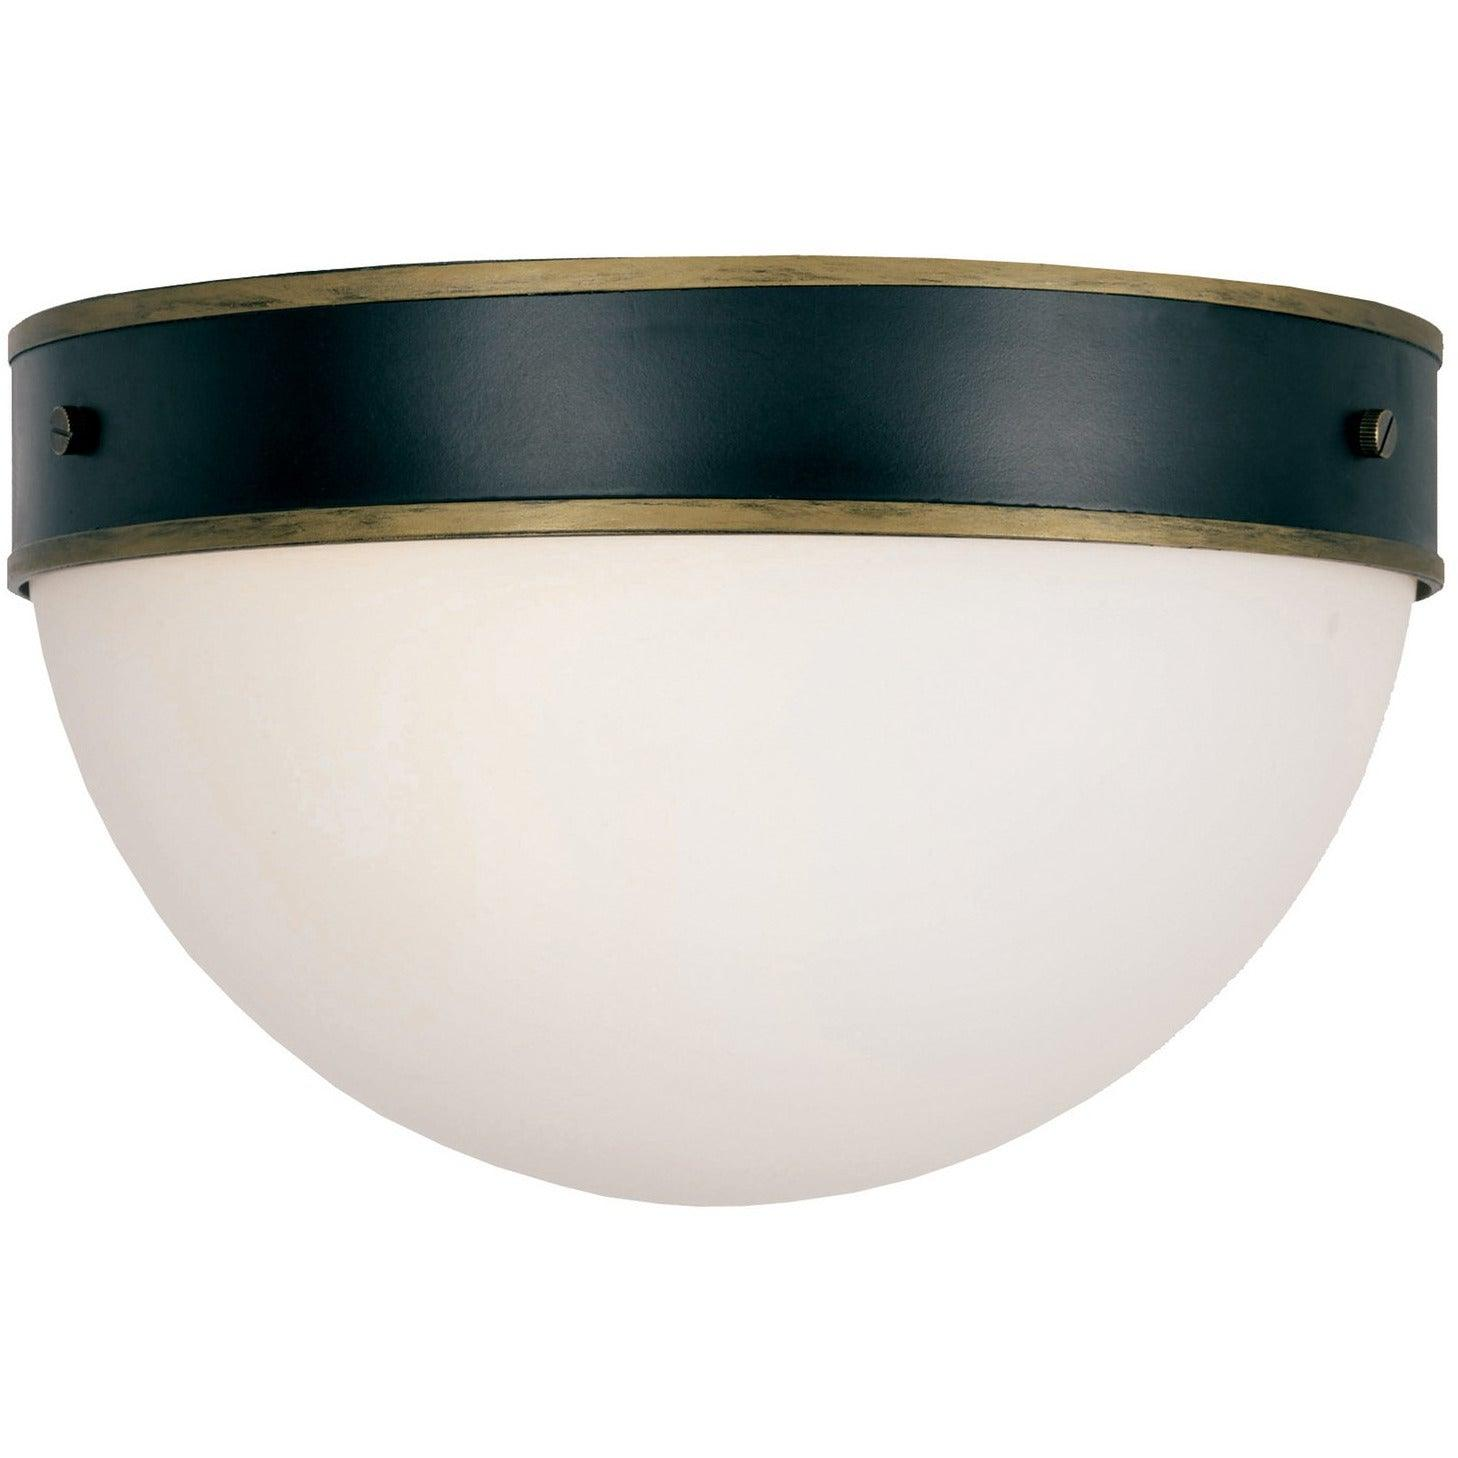 Crystorama - CAP-8503-MK-TG - Two Light Outdoor Ceiling Mount - Capsule - Matte Black